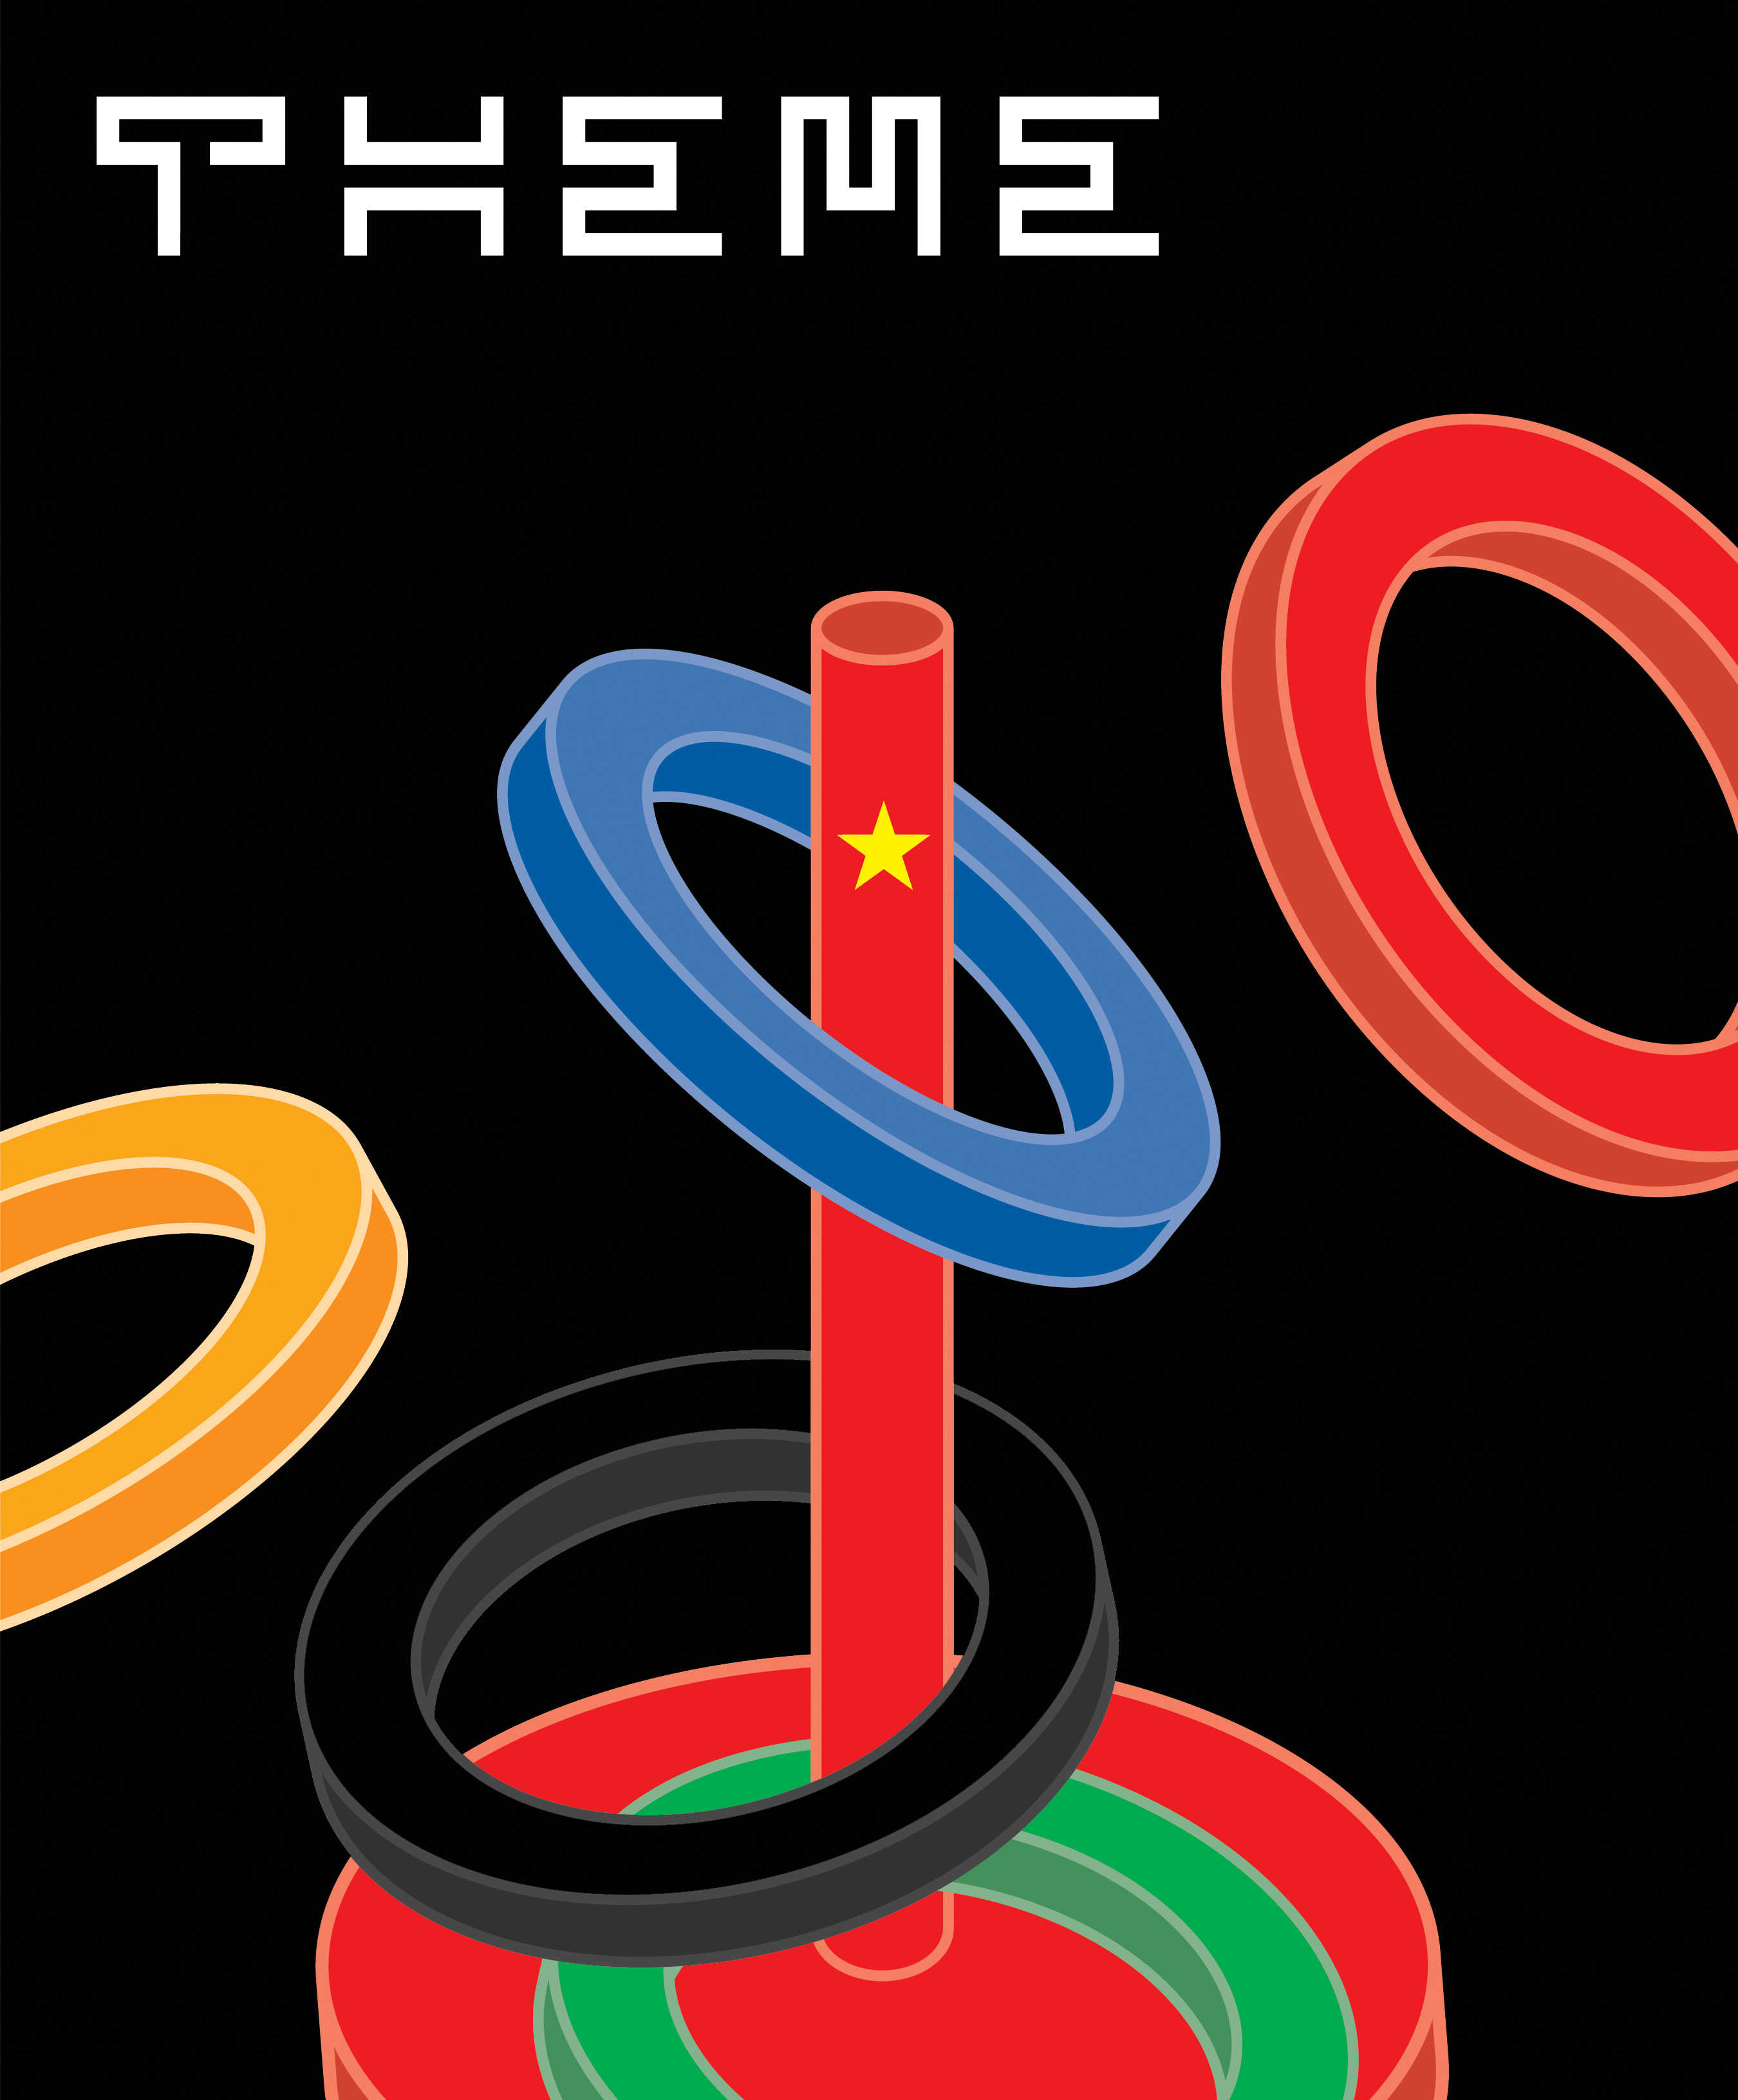 Theme mag beijing olympics cover archival jelsen cover design for theme magazine for the beijing olympics issue biocorpaavc Choice Image